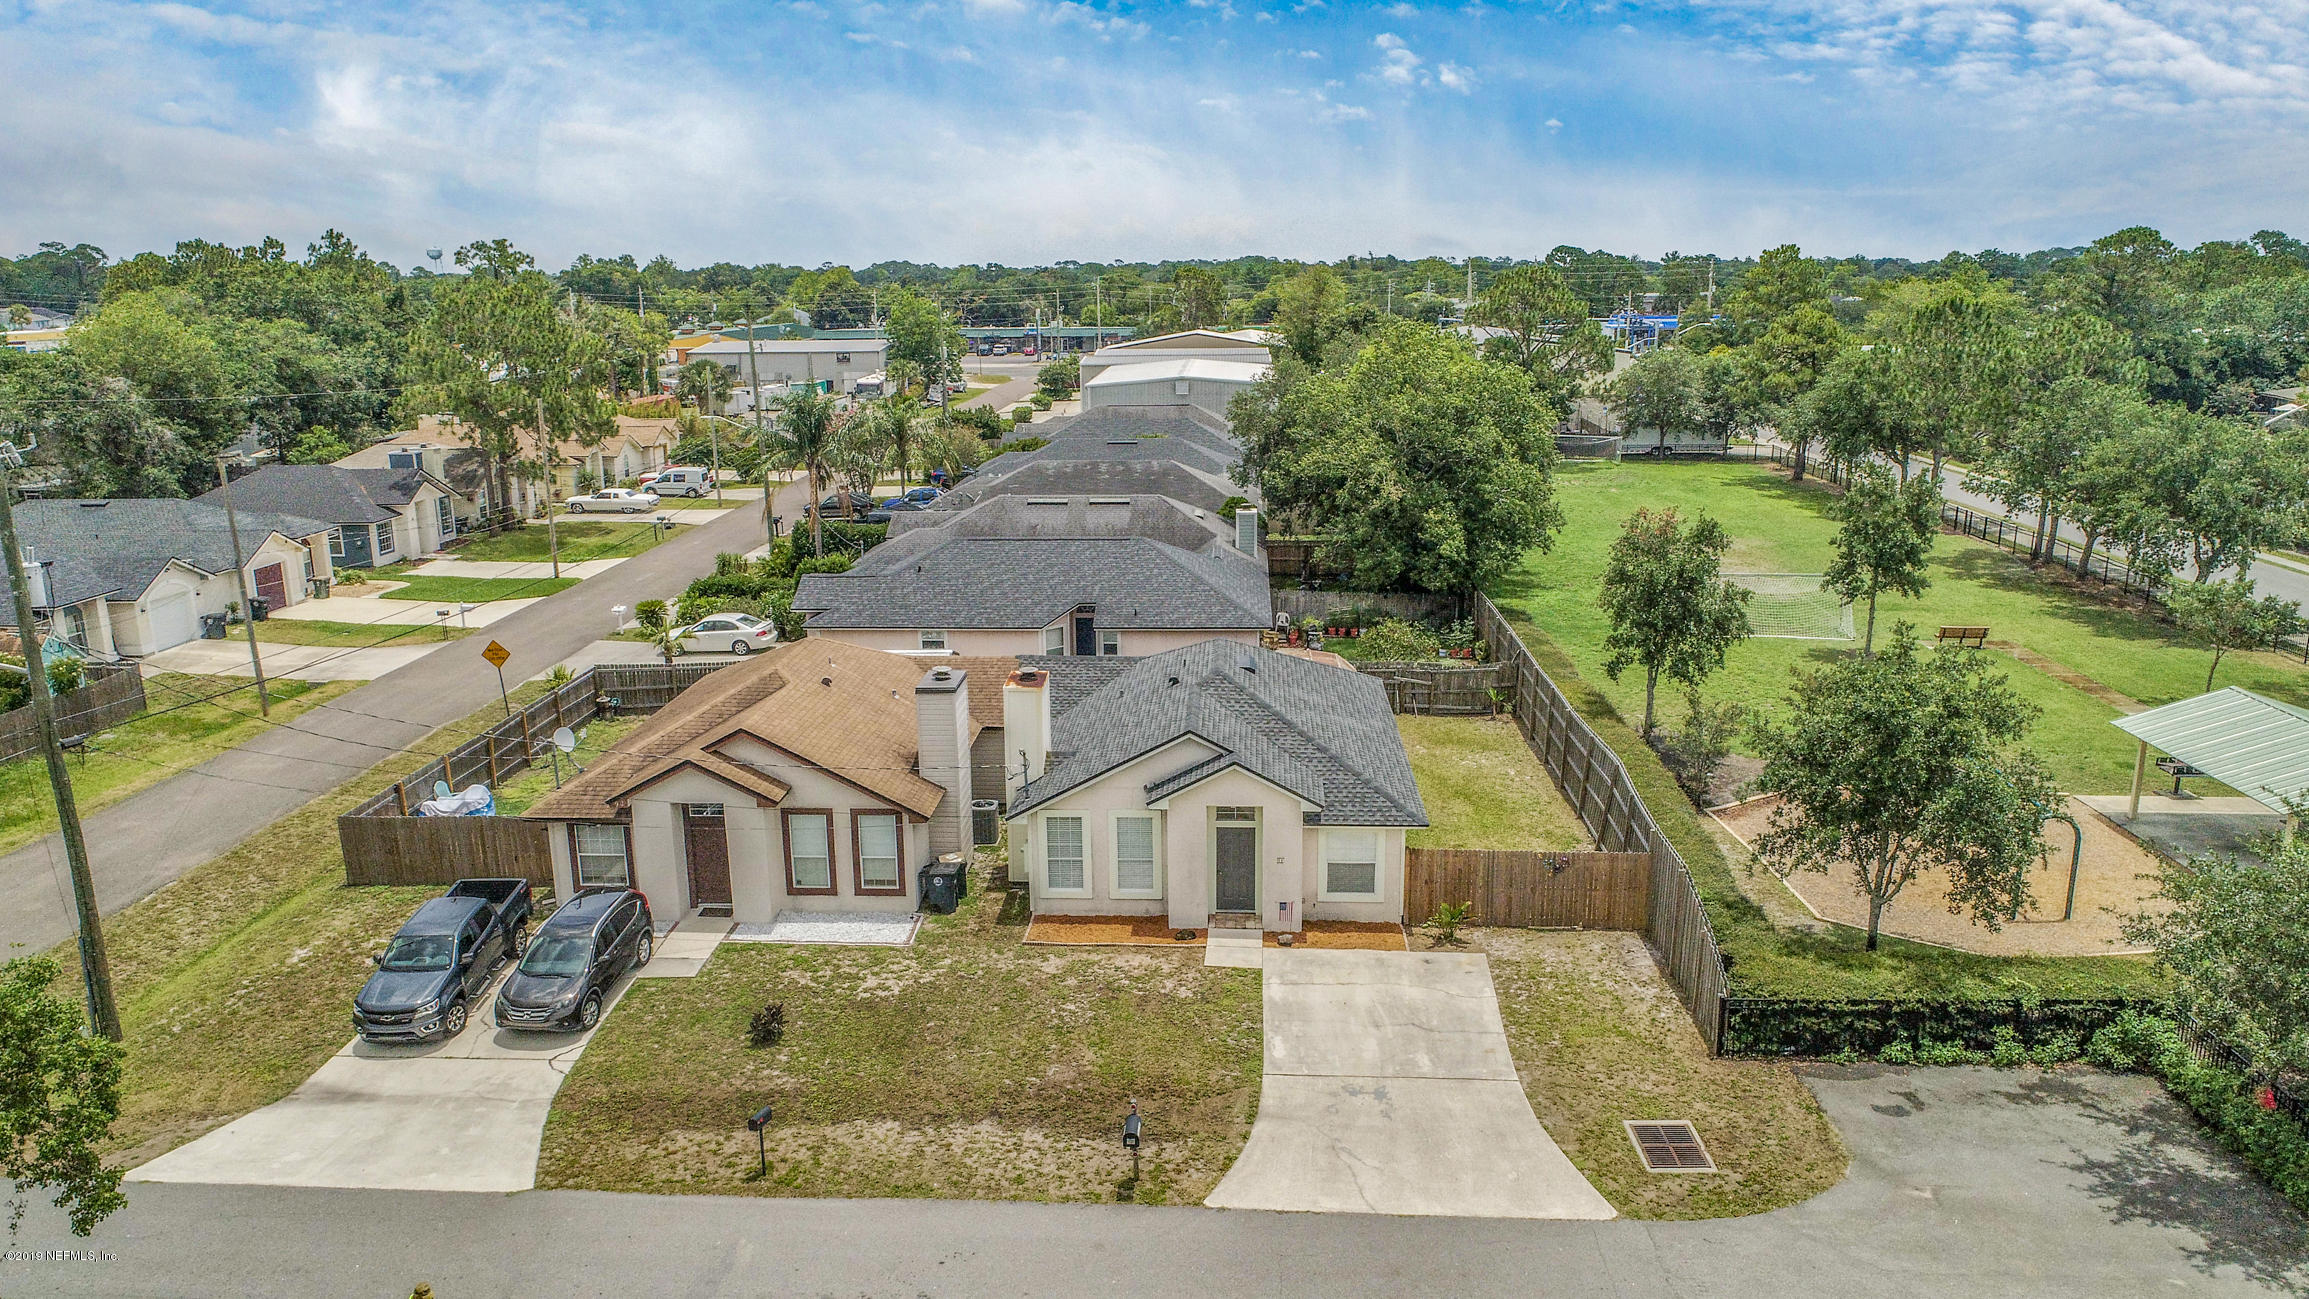 94 13TH, ATLANTIC BEACH, FLORIDA 32233, 3 Bedrooms Bedrooms, ,2 BathroomsBathrooms,Residential - single family,For sale,13TH,1000466